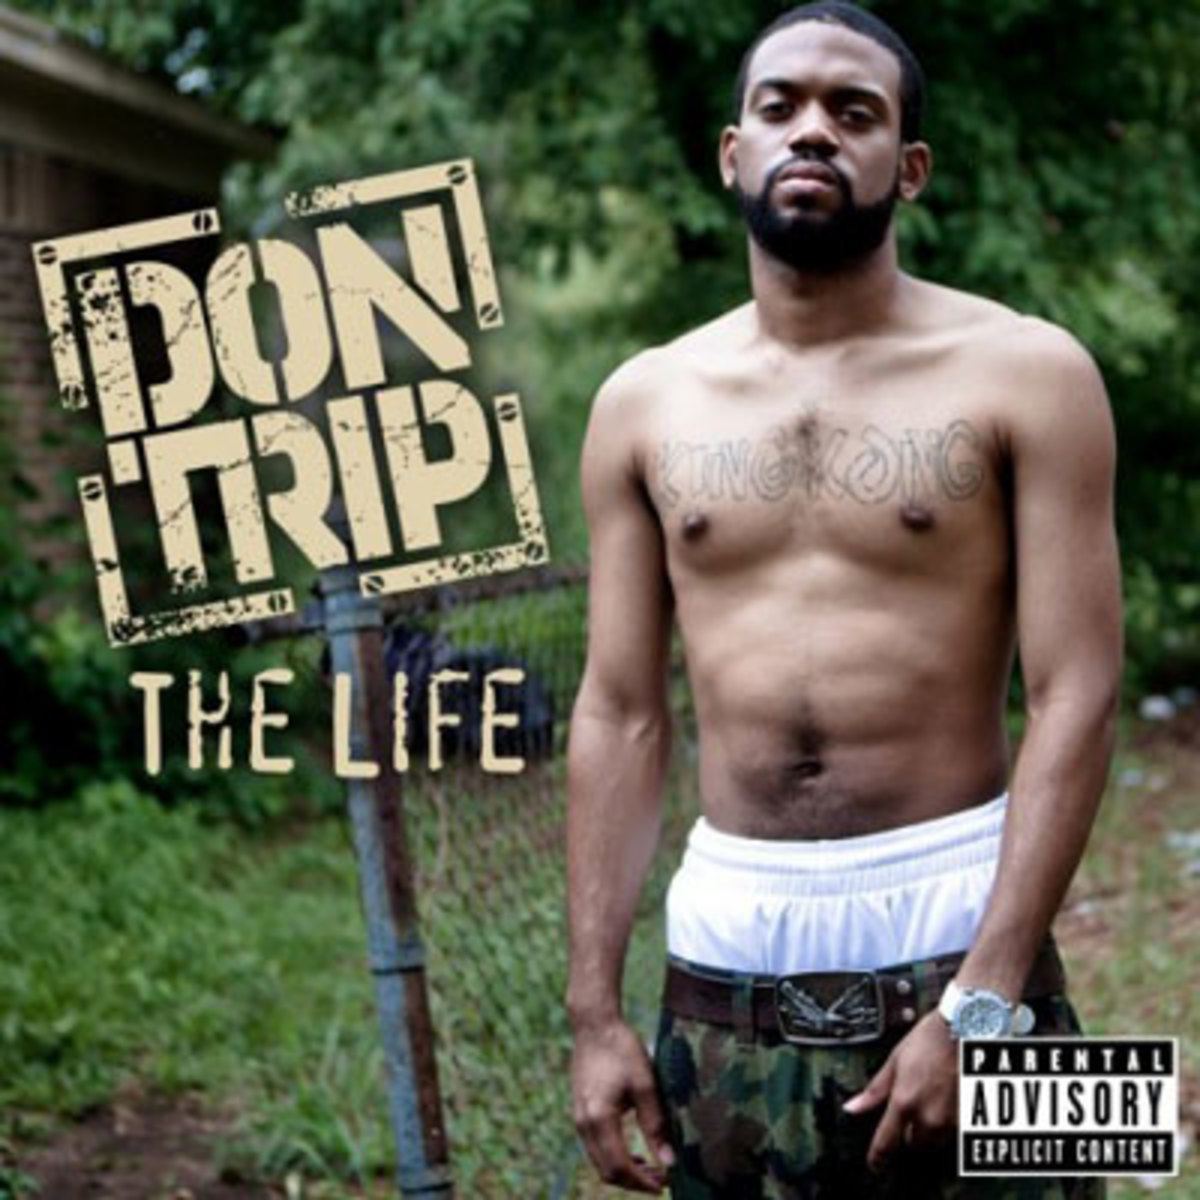 dontrip-thelife.jpg